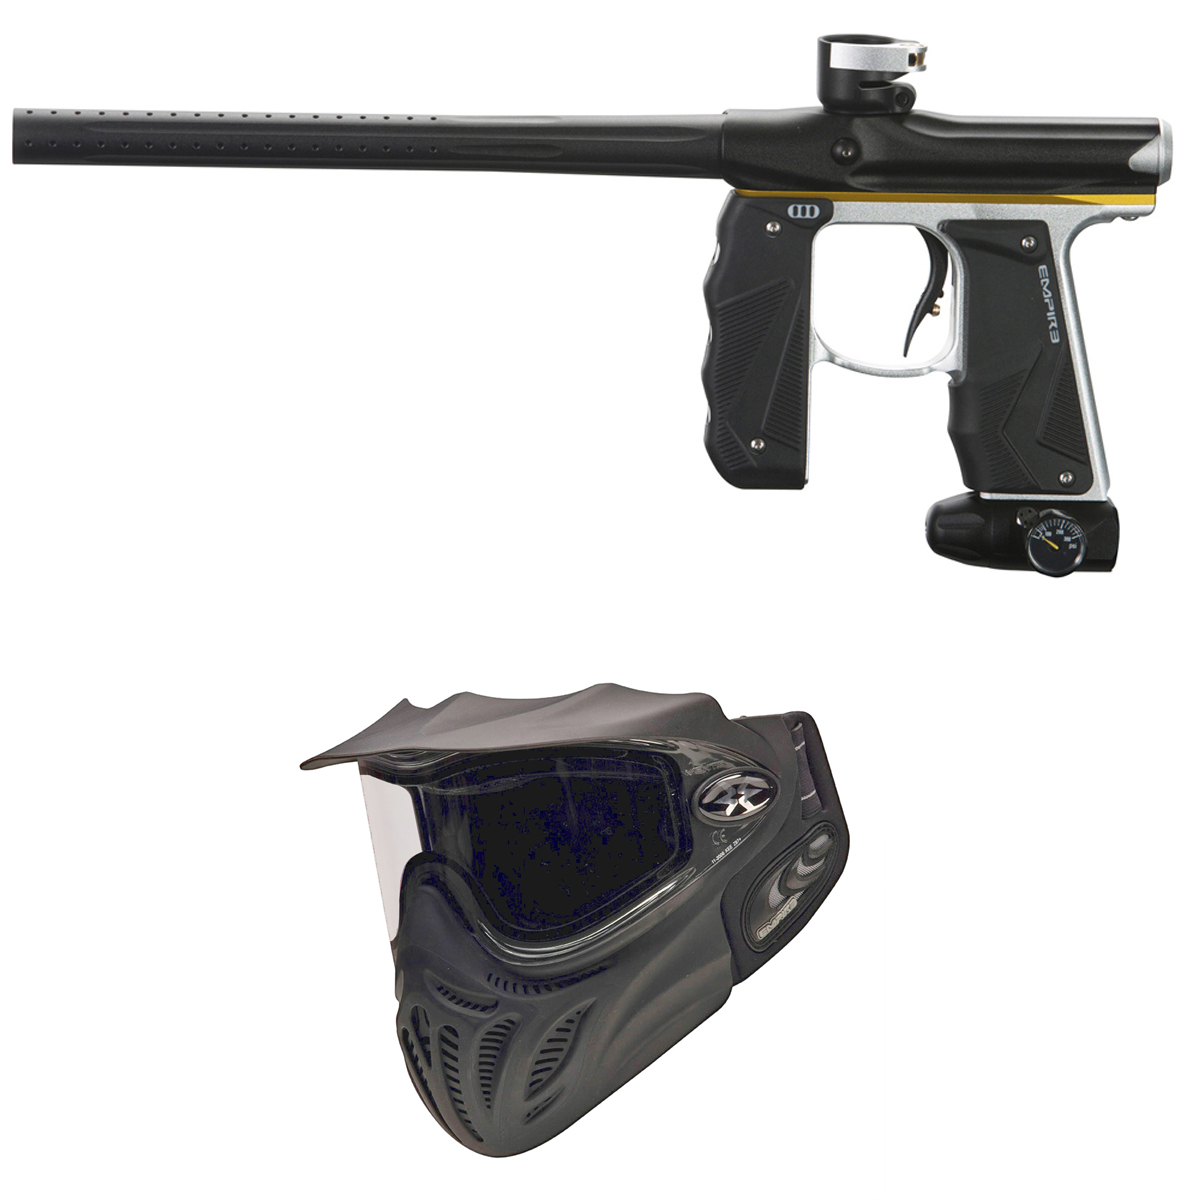 Empire Invert Mini GS Paintball Gun - Silver/Gold/Black w/ Event Mask